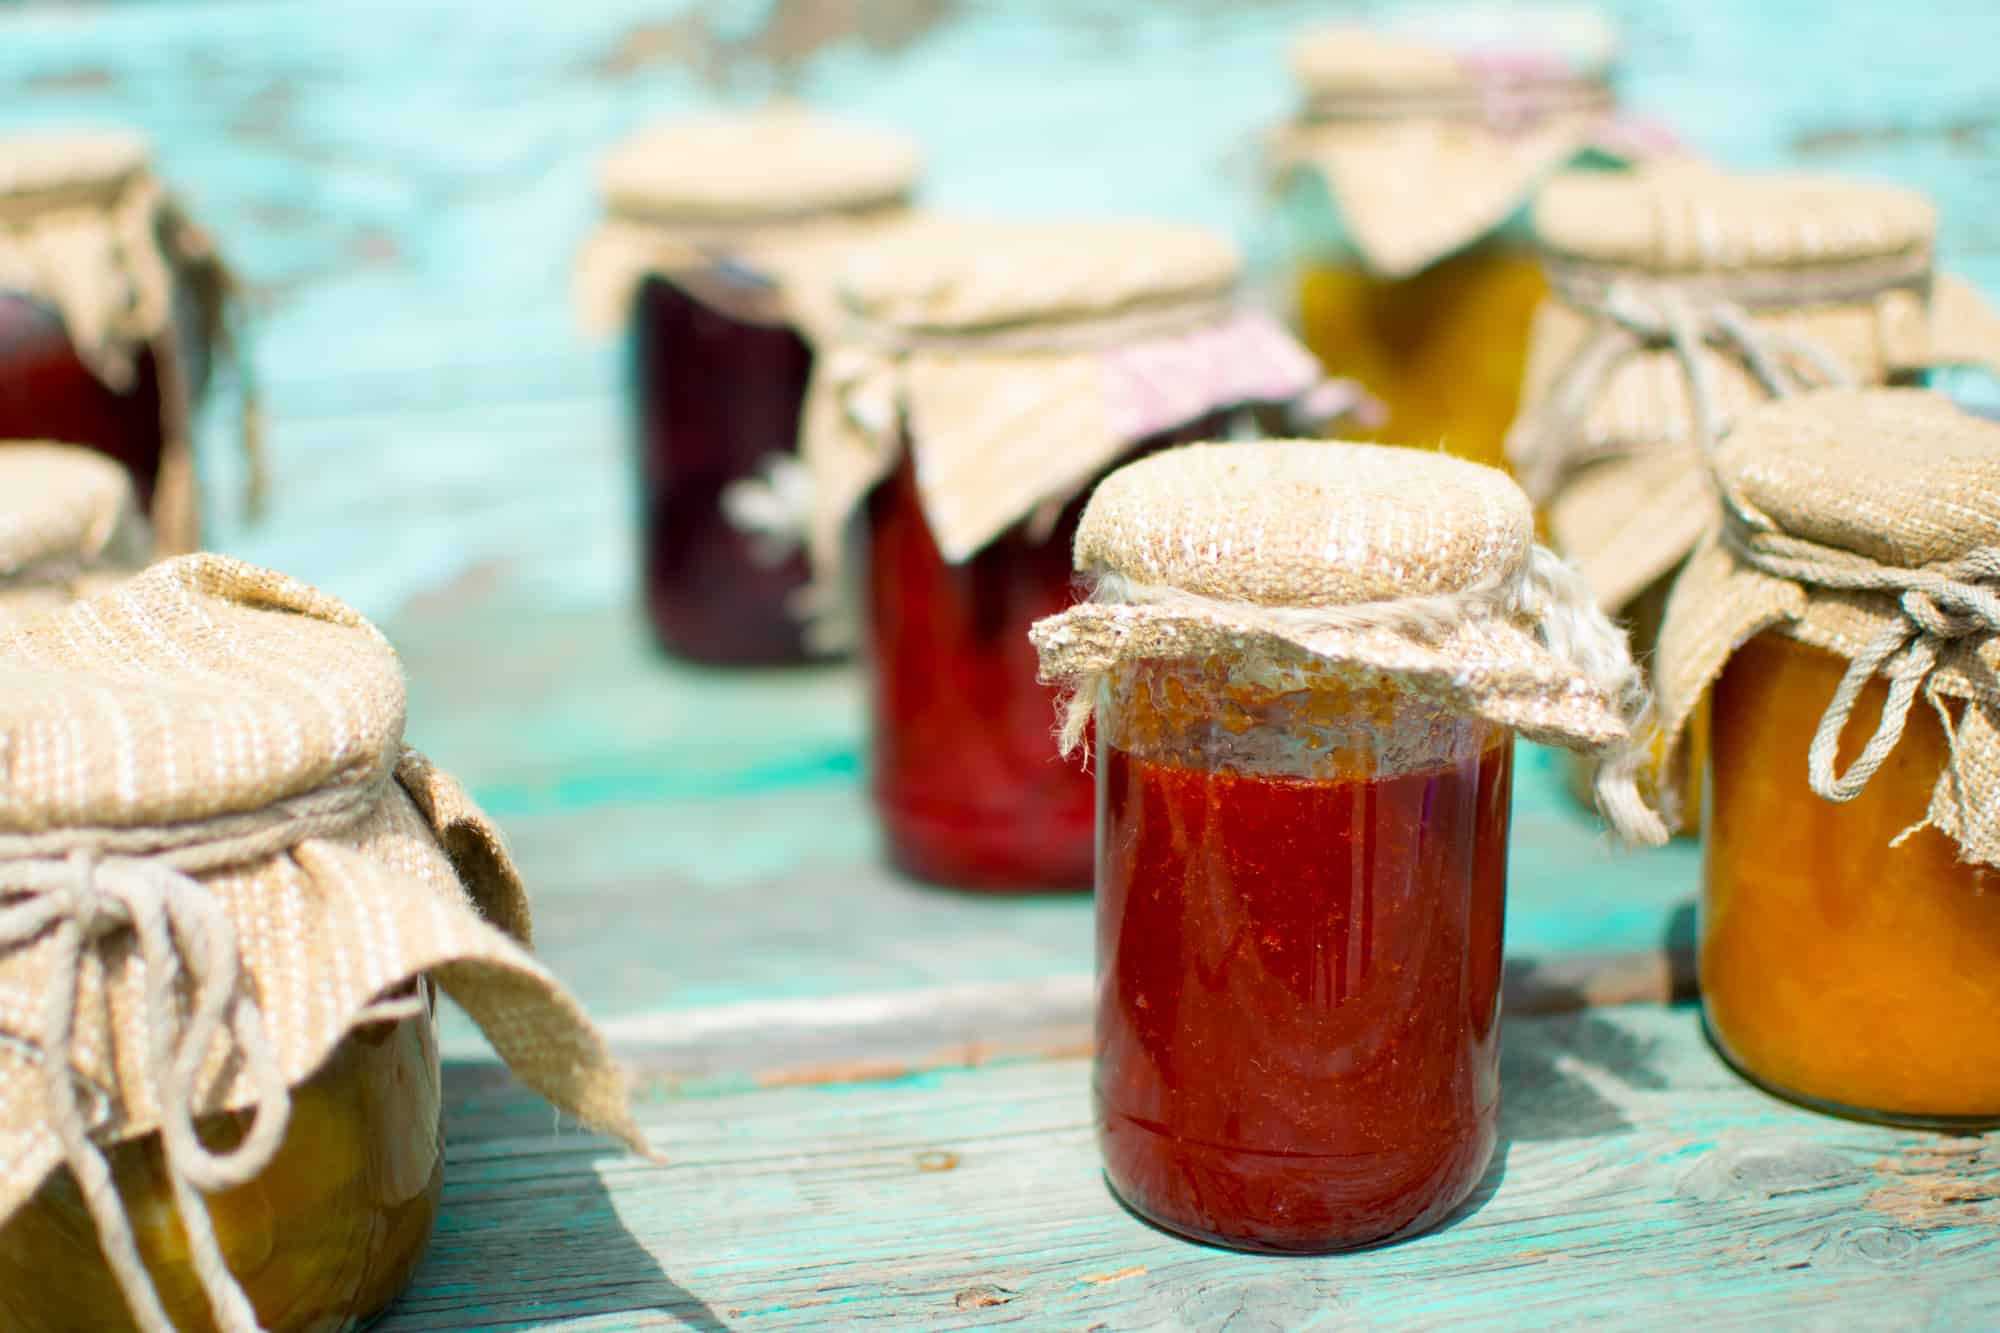 Several mason jars filled with fresh jam